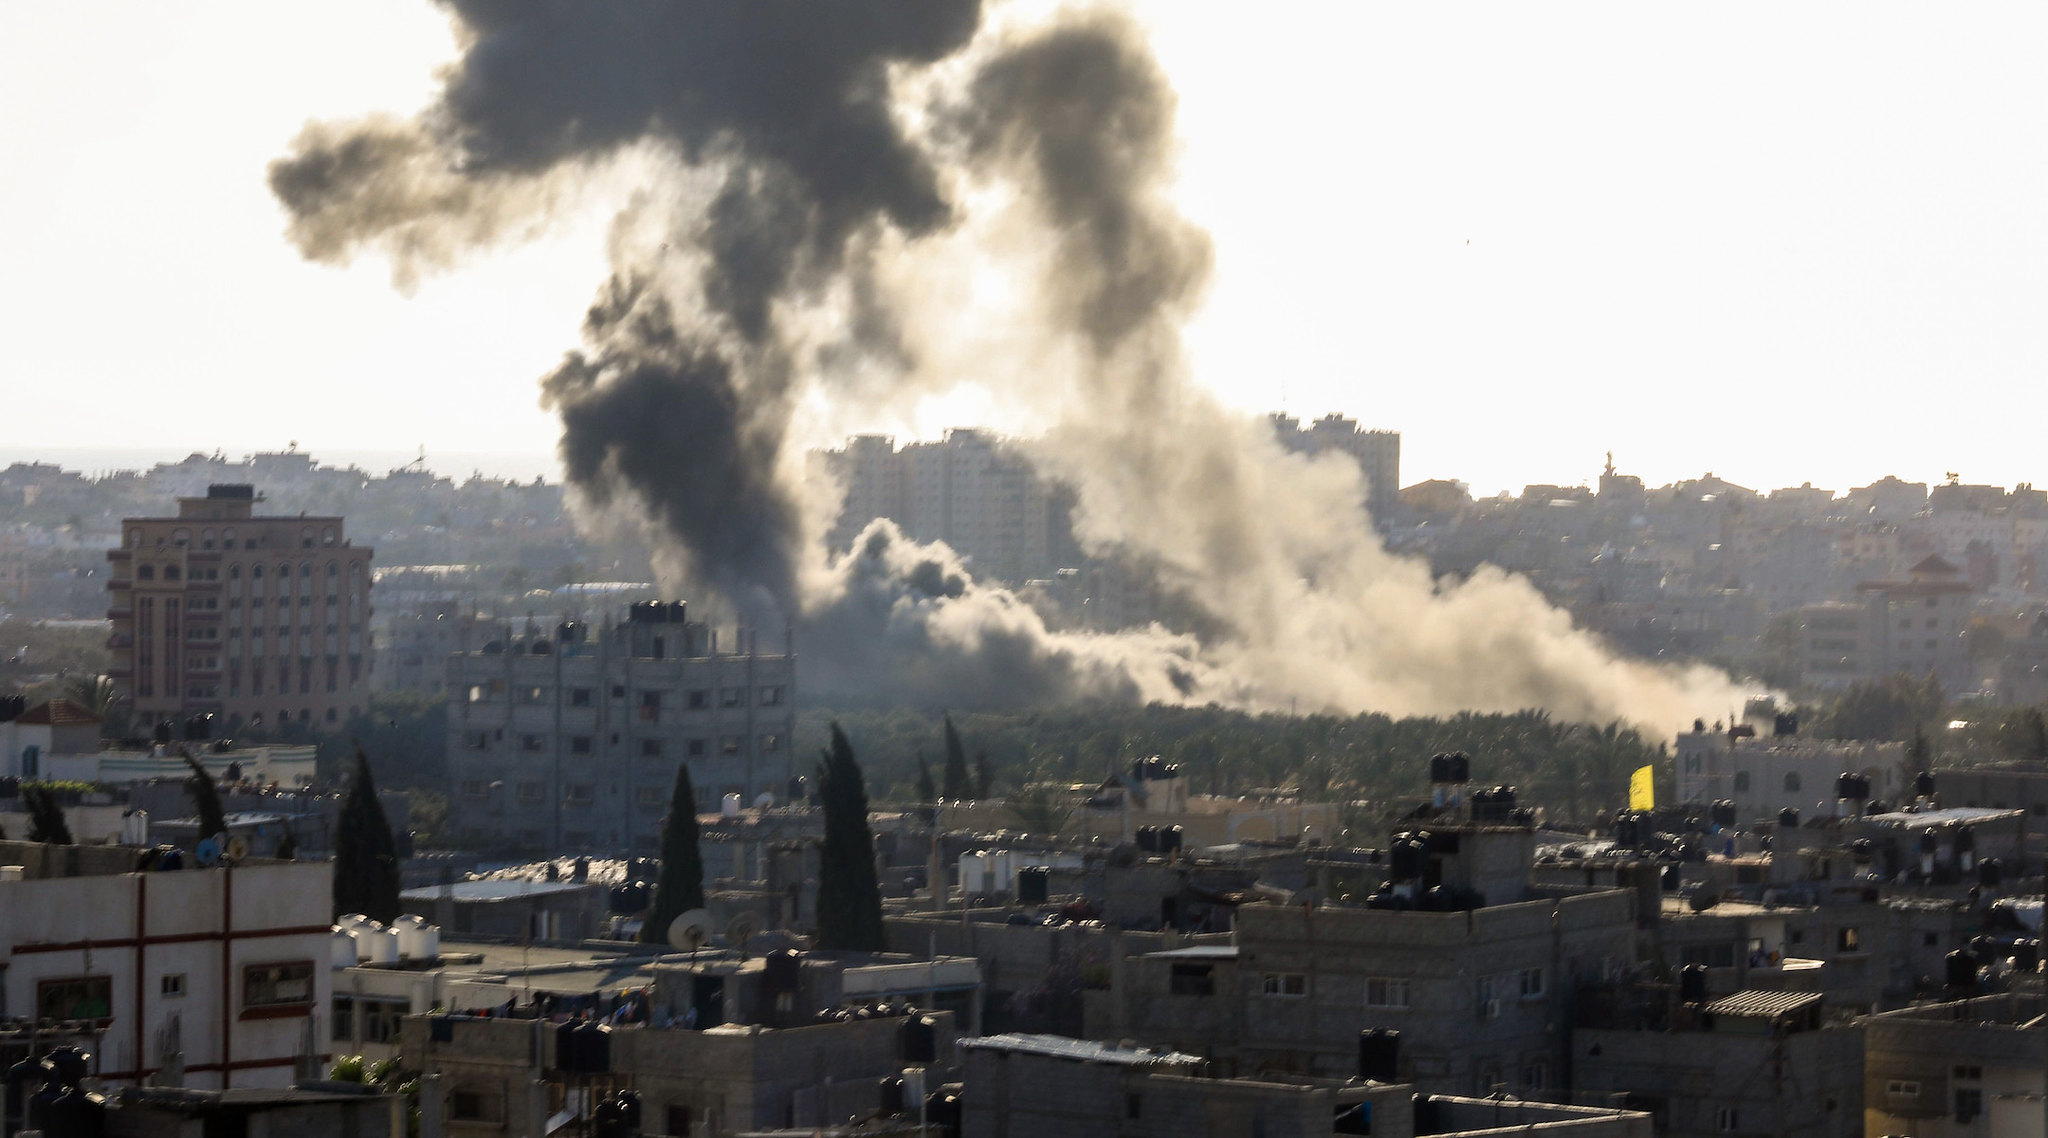 Rocket fire reignites Holy Land conflict